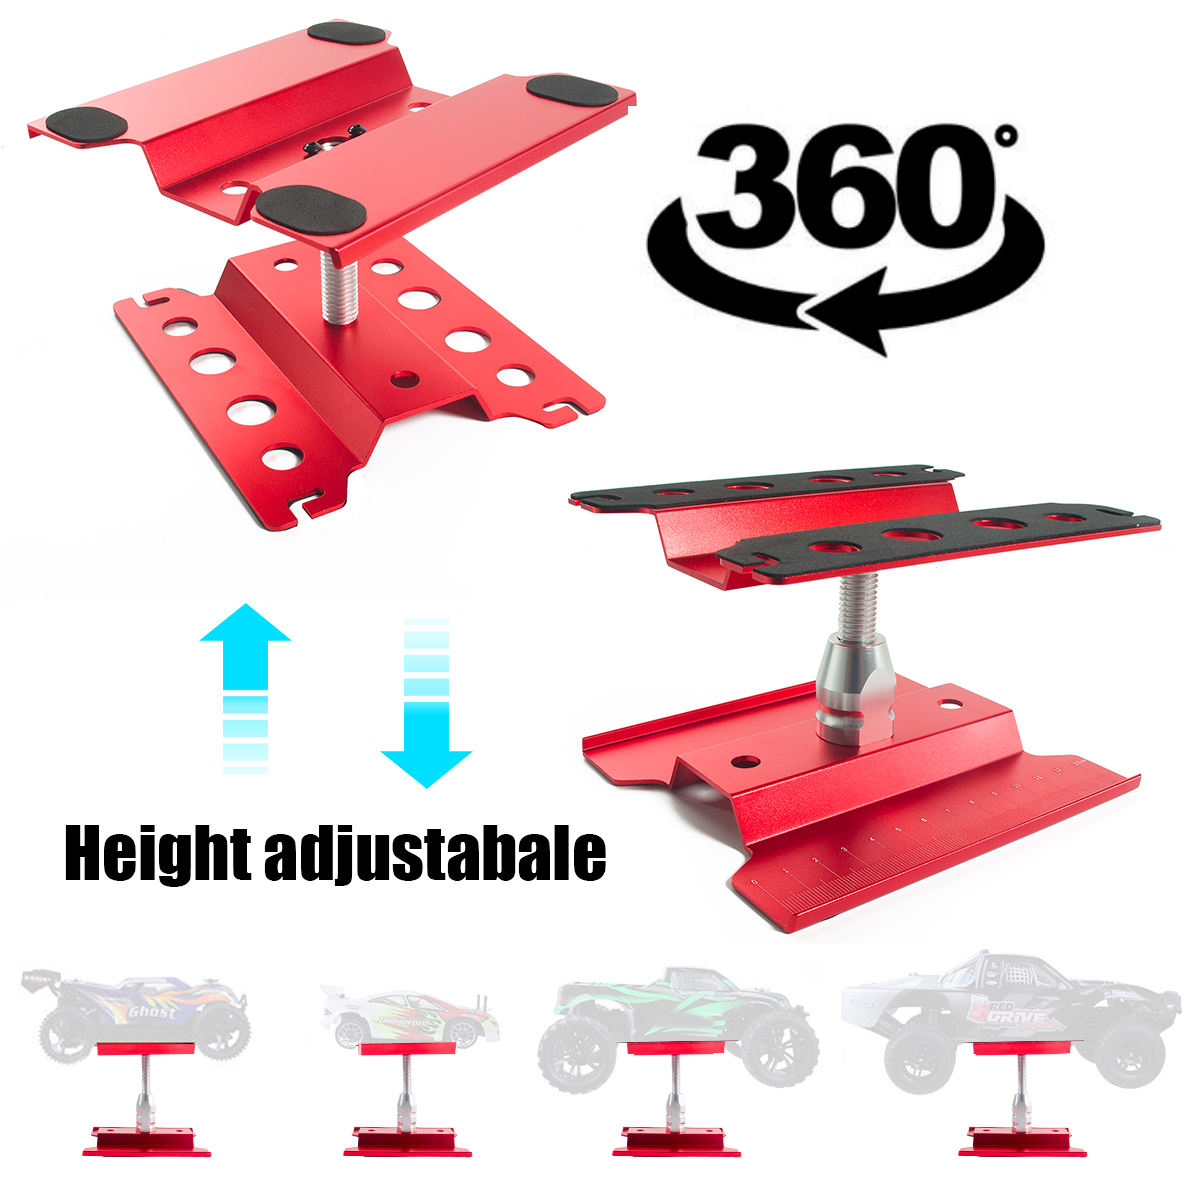 1:10 Metal Car Work Stand Assembly Repair Platform 360- Degree Rotation Lift Or Lower for 1/8 1/10 1/12 1/16 Scale Models